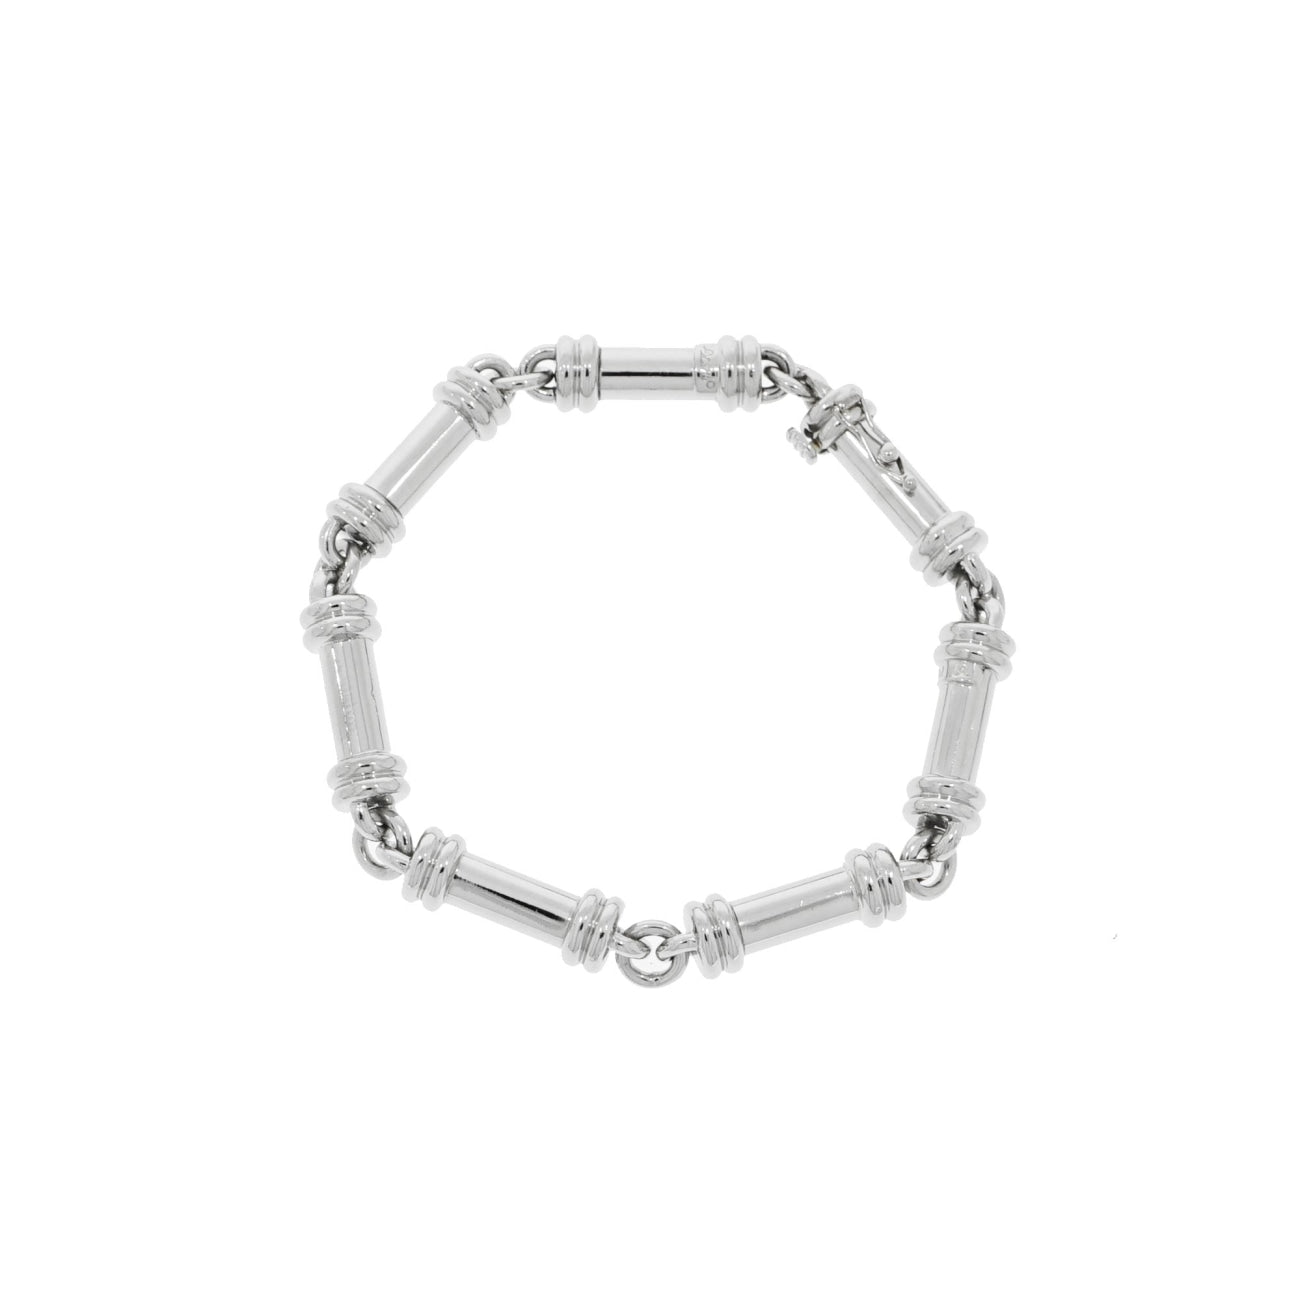 Estate Jewelry Estate Jewelry - Solid Platinum Bracelet | Manfredi Jewels